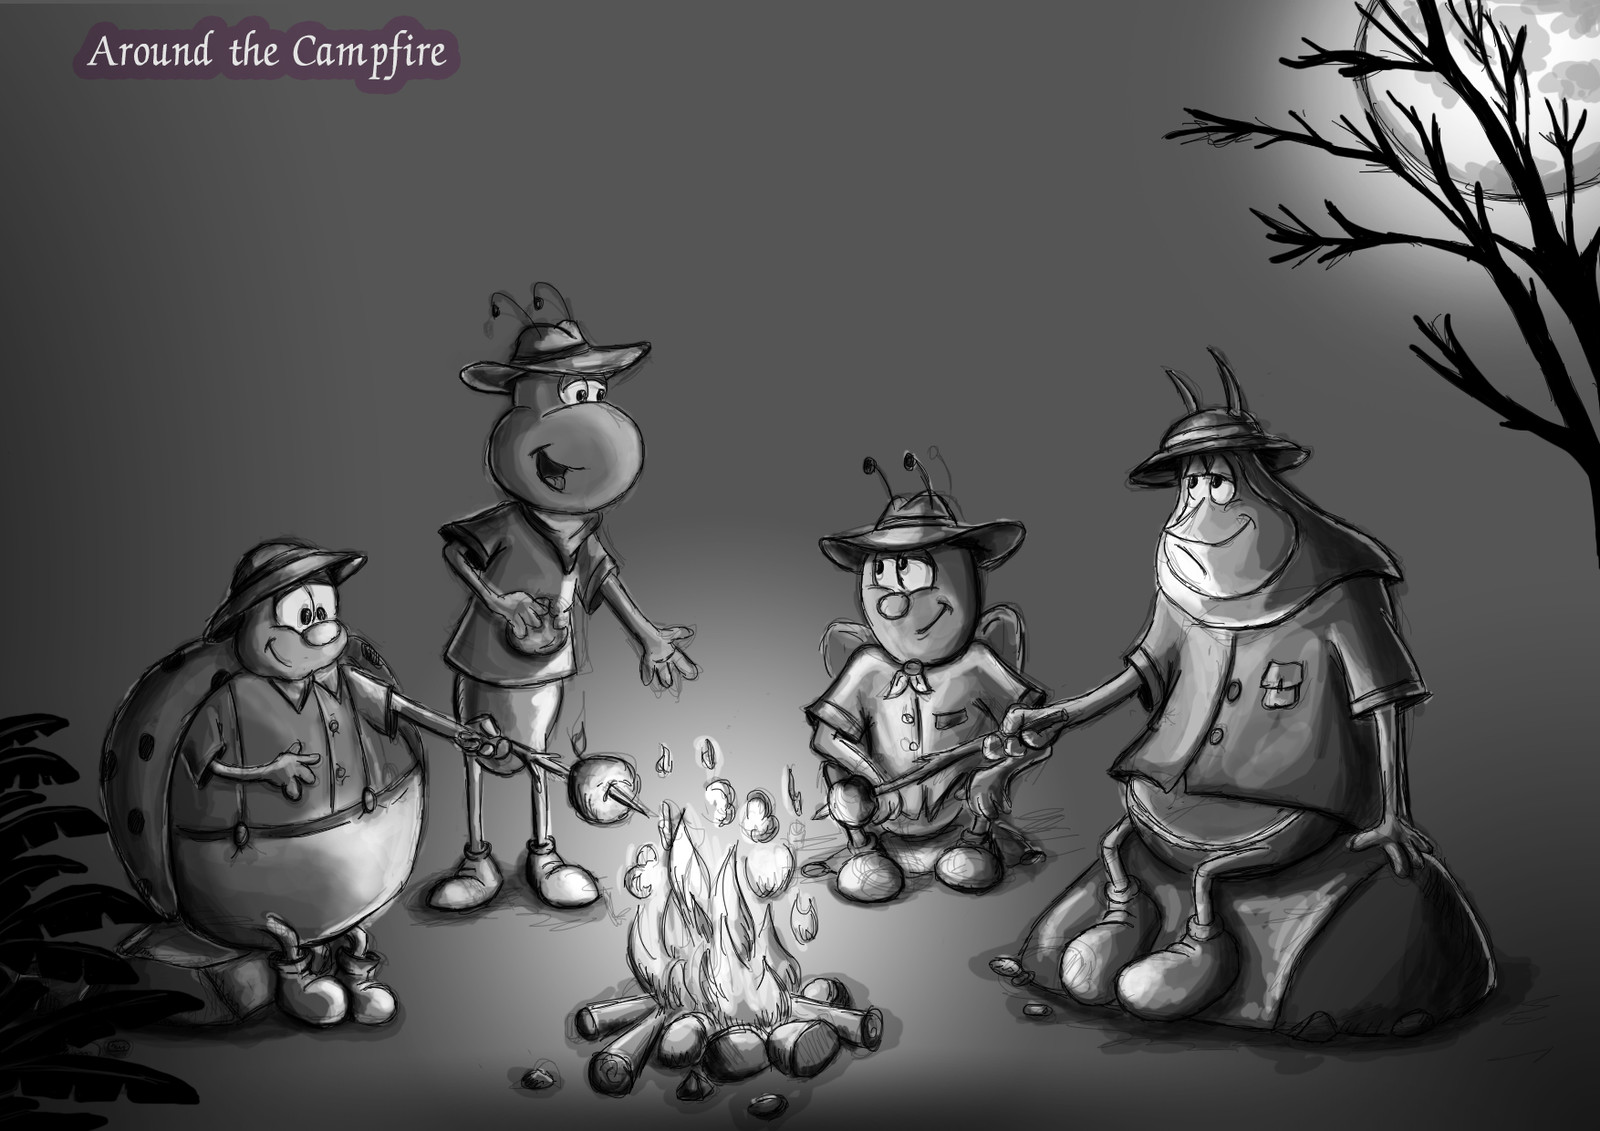 Camp fire, concept illustration in 4 steps